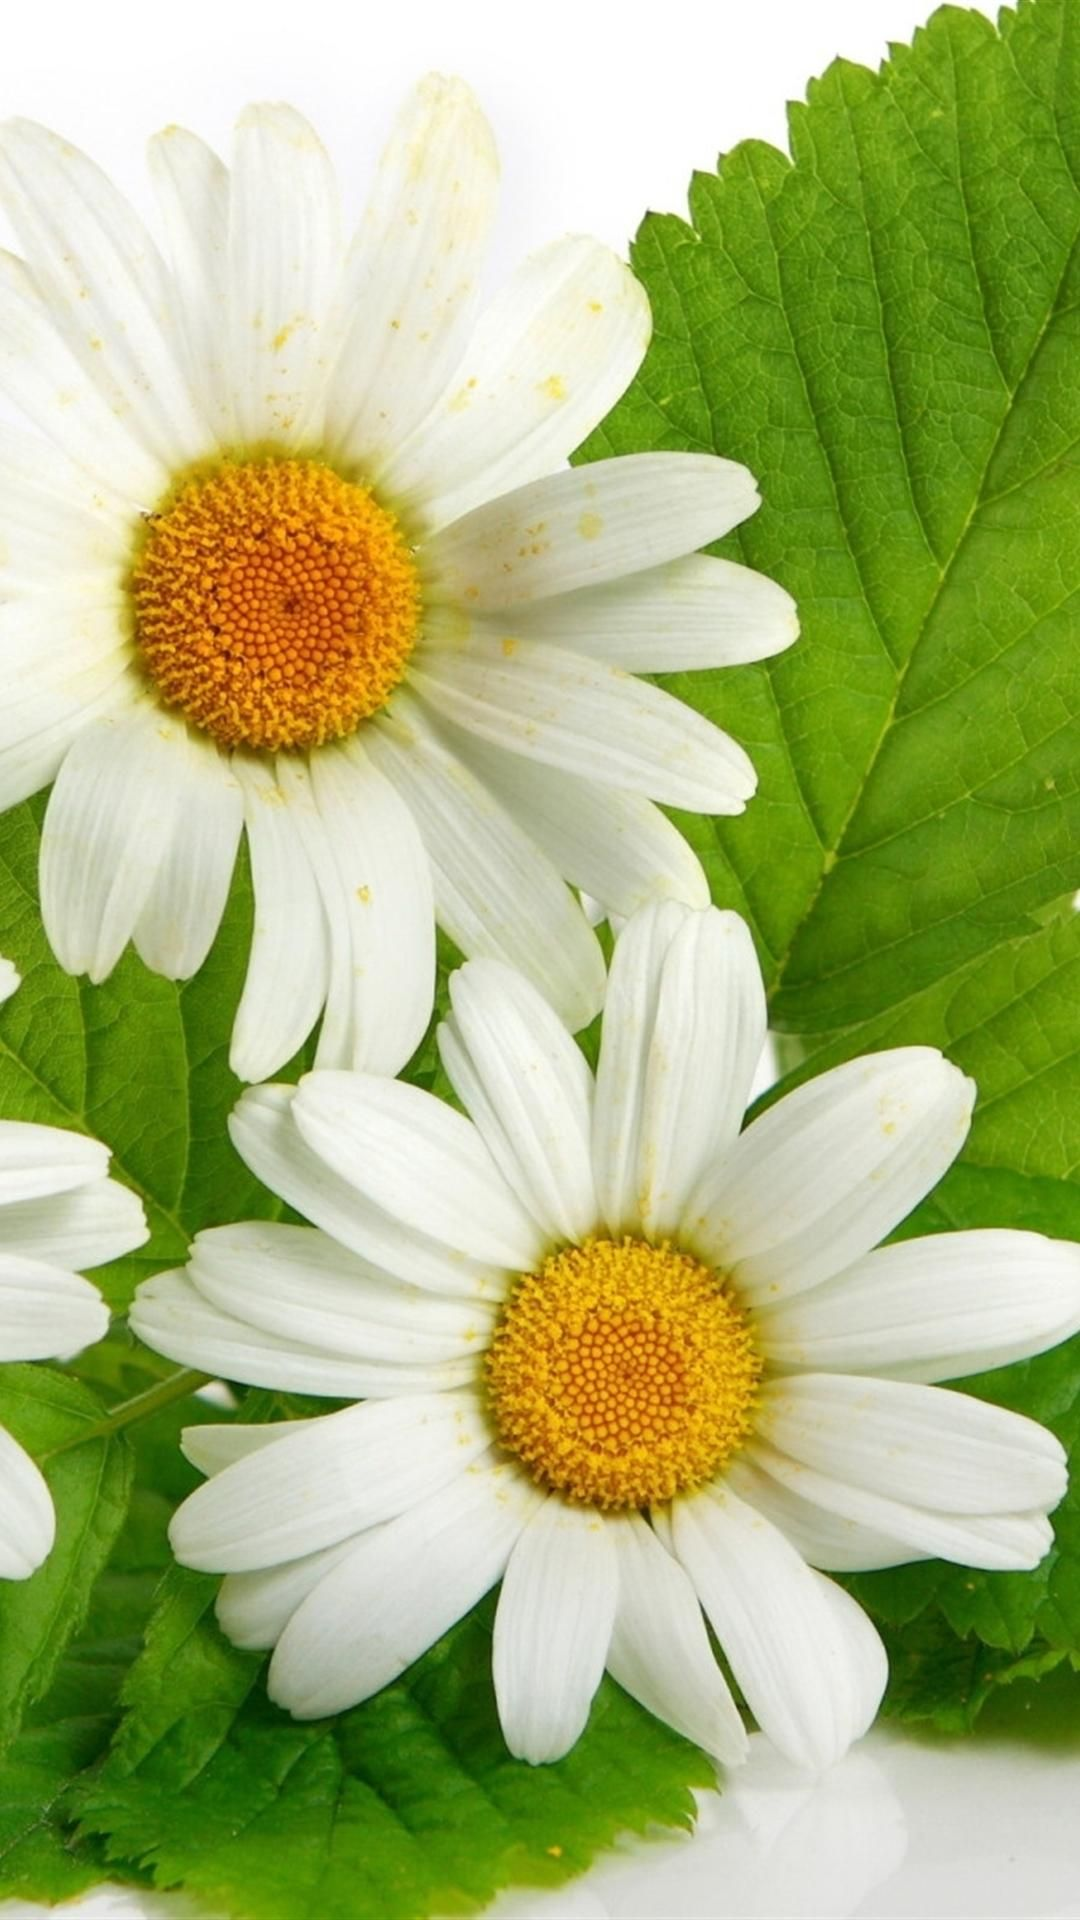 Daisies Flowers Leaves Song Daisy Pinterest Leaves Flowers